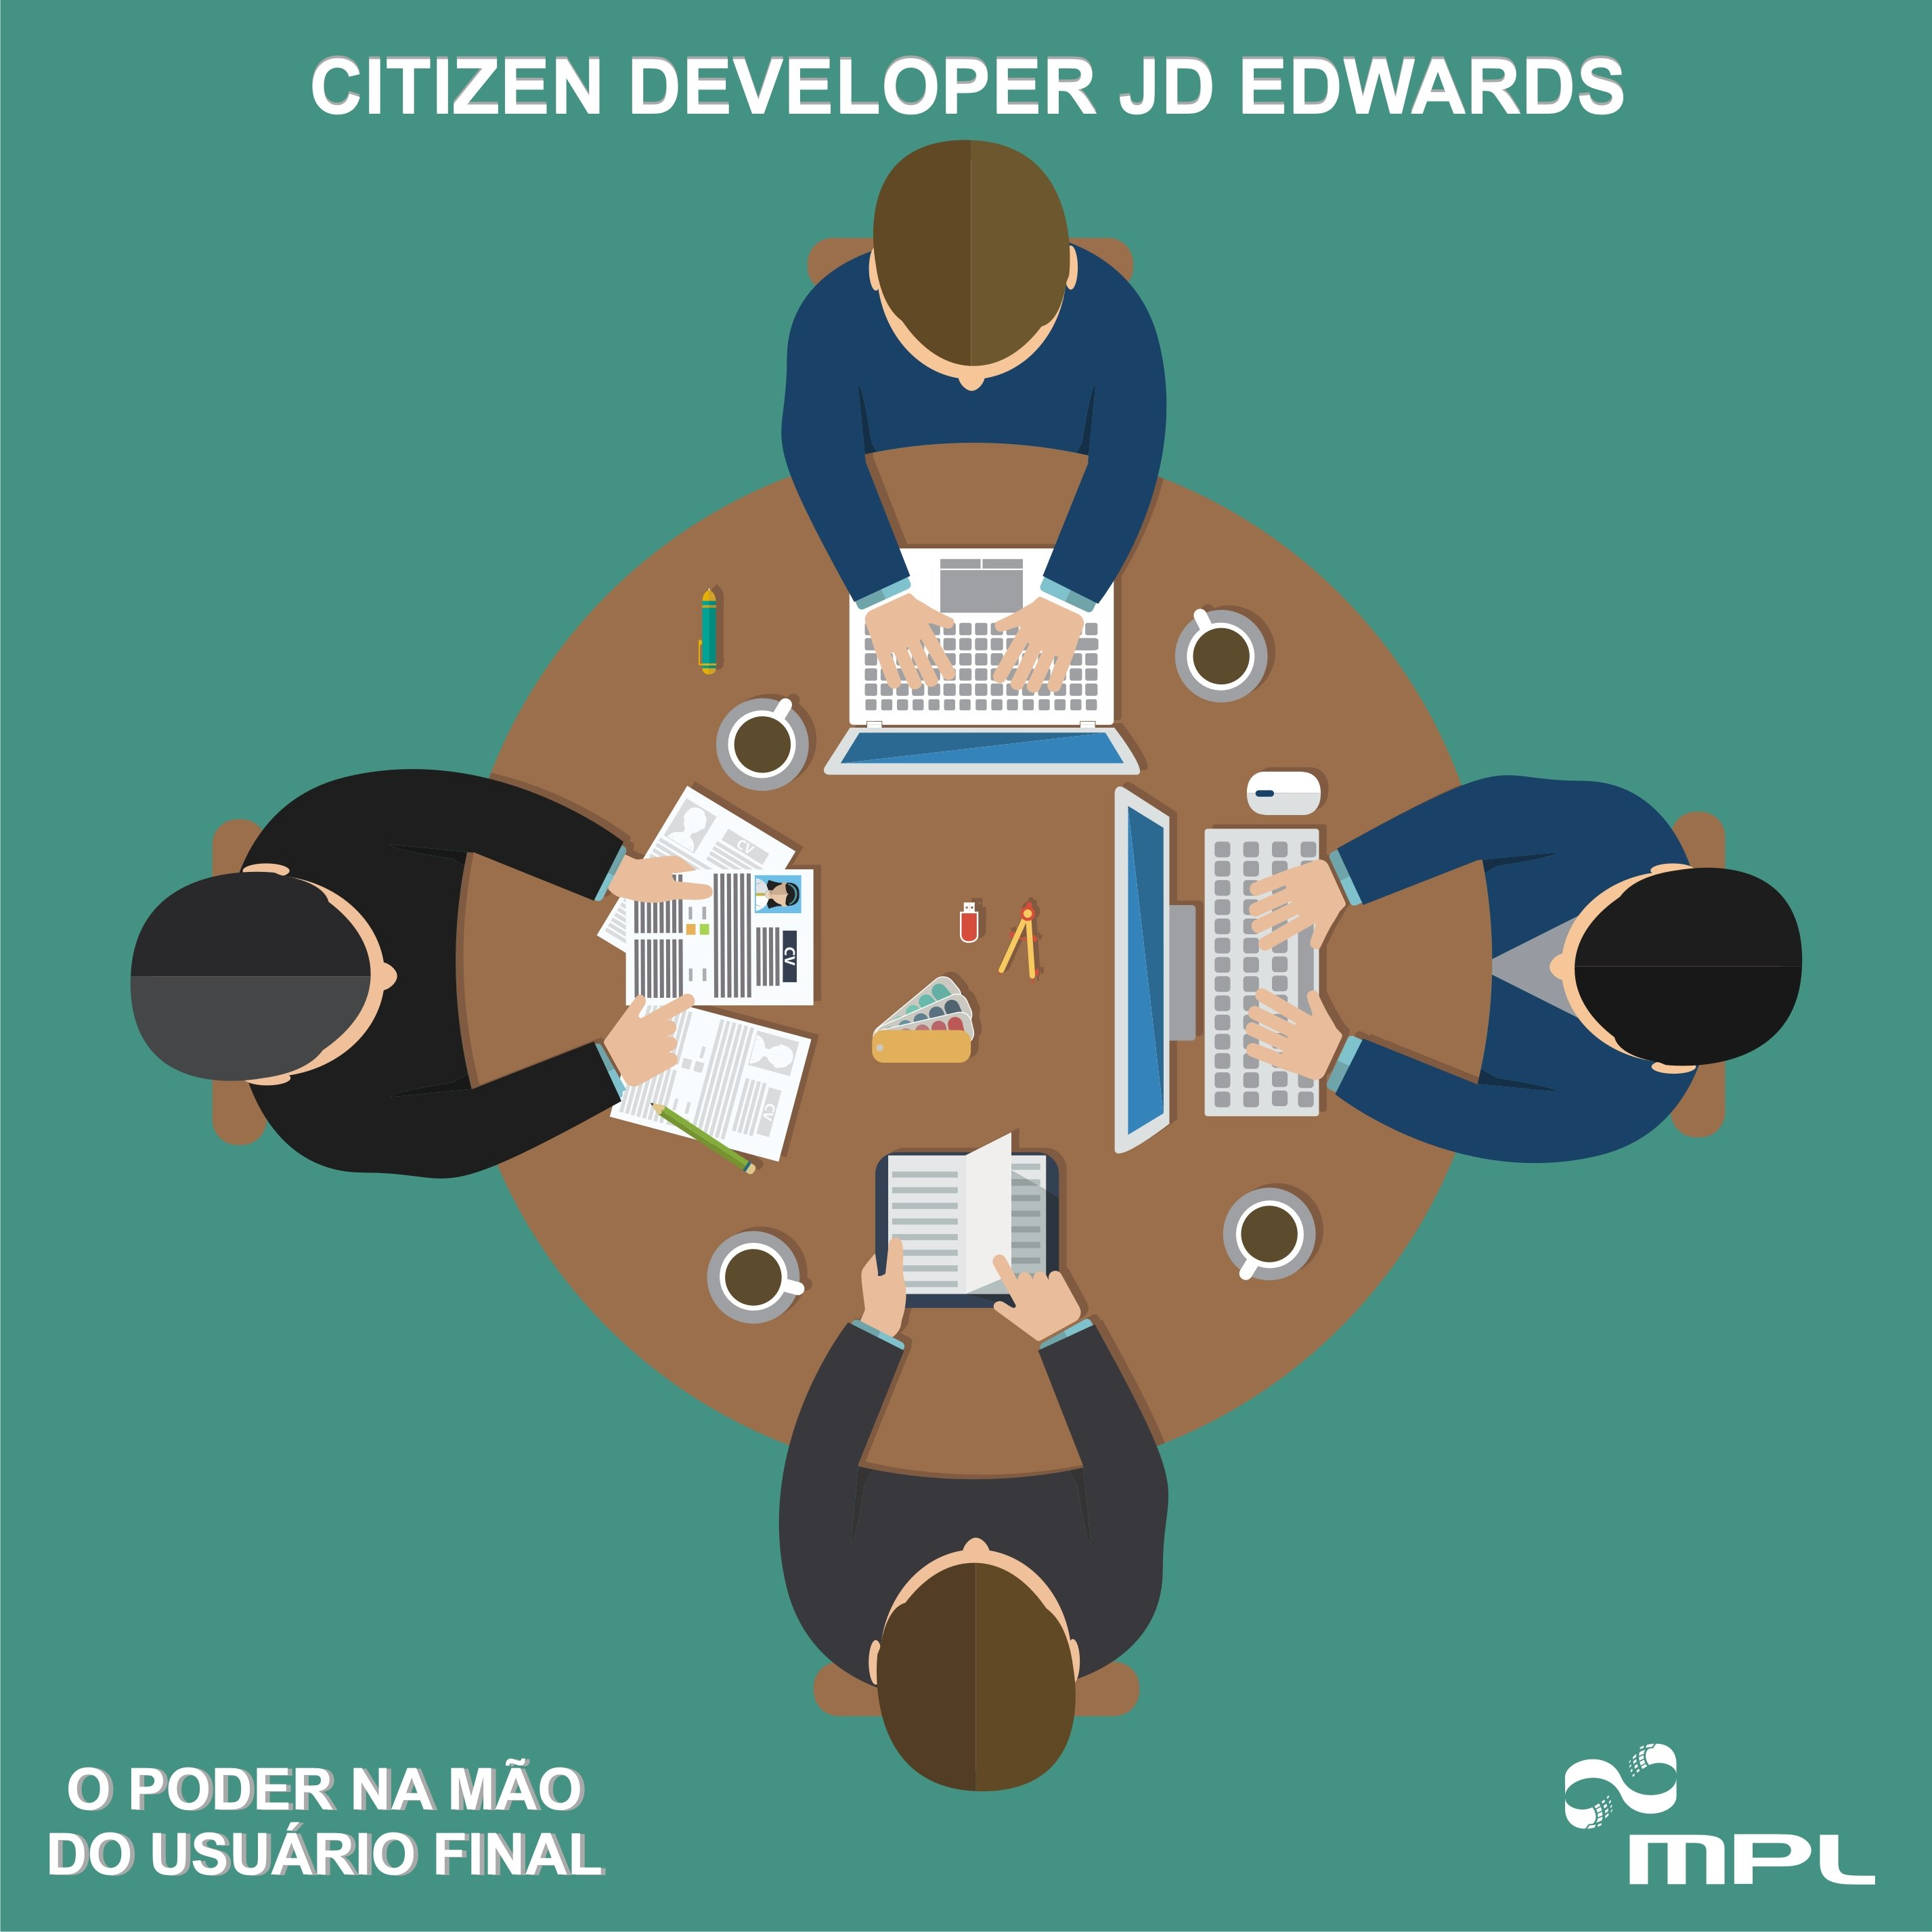 Citizen Developer JD Edwards